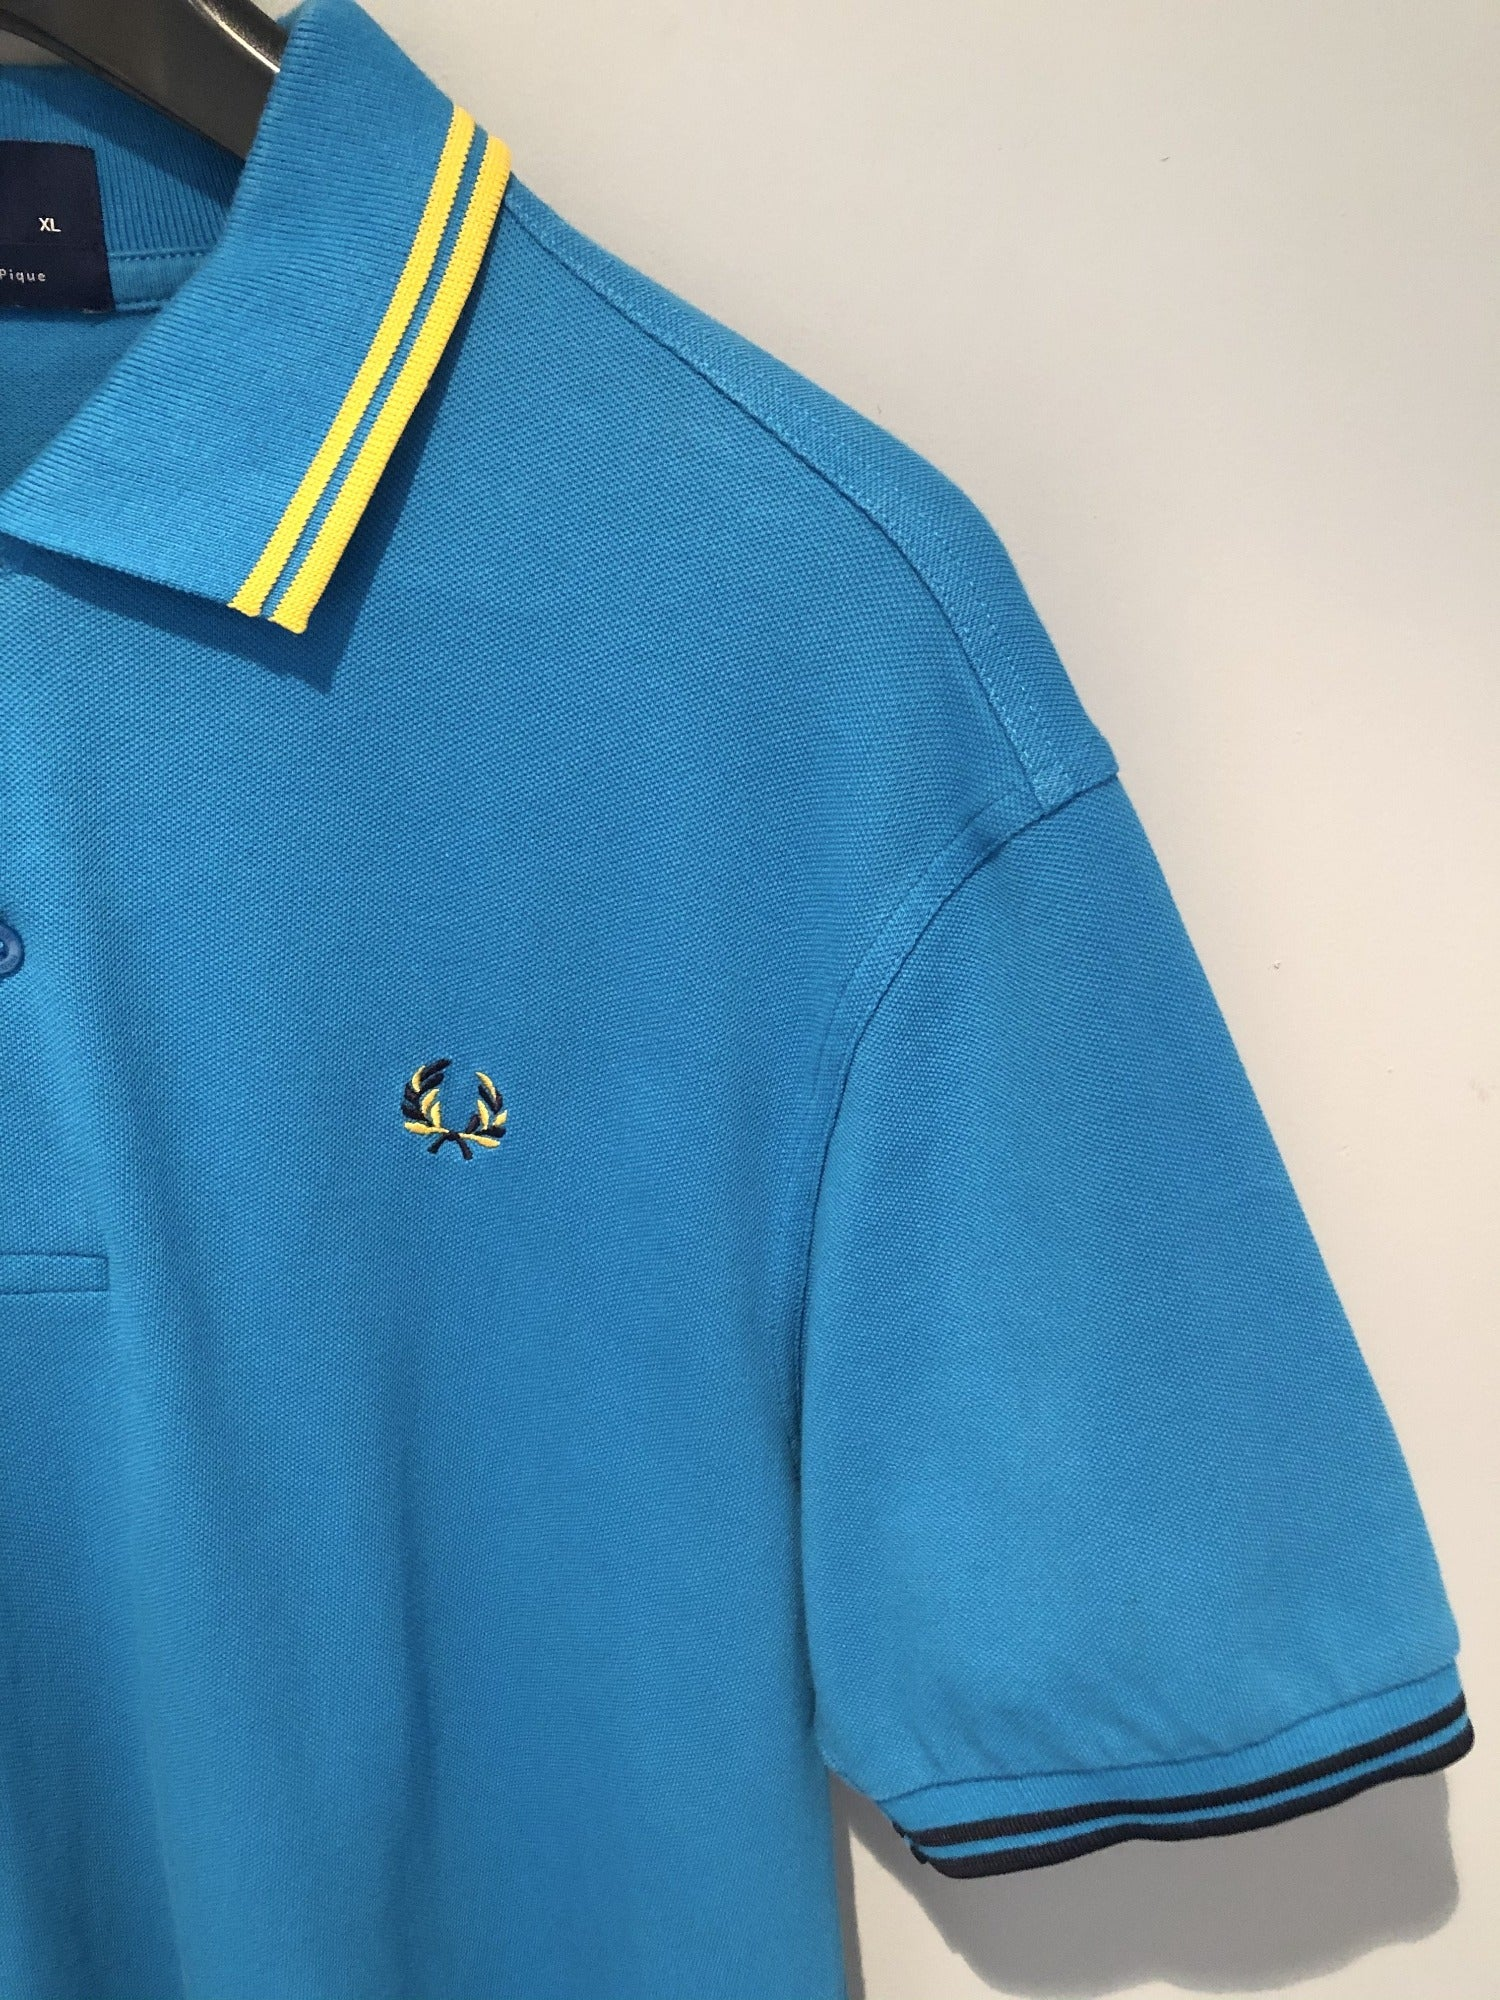 Fred Perry 100% Cotton Pique Polo Top Blue - Size XL - MOD Clothing - Urban Village Clothing